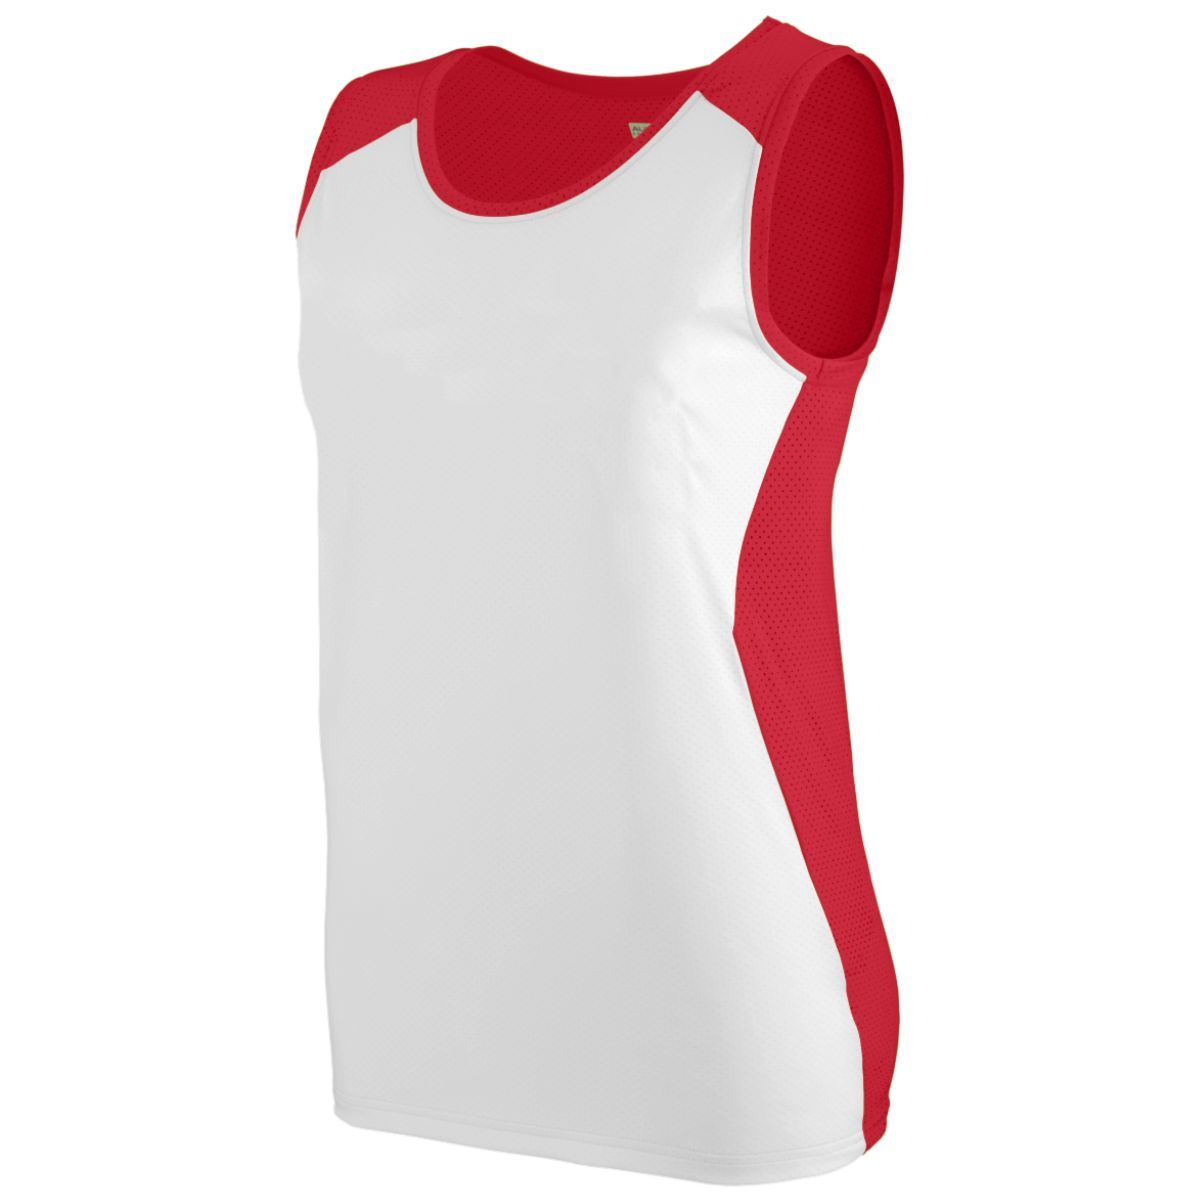 Ladies Alize Jersey - RED/WHITE